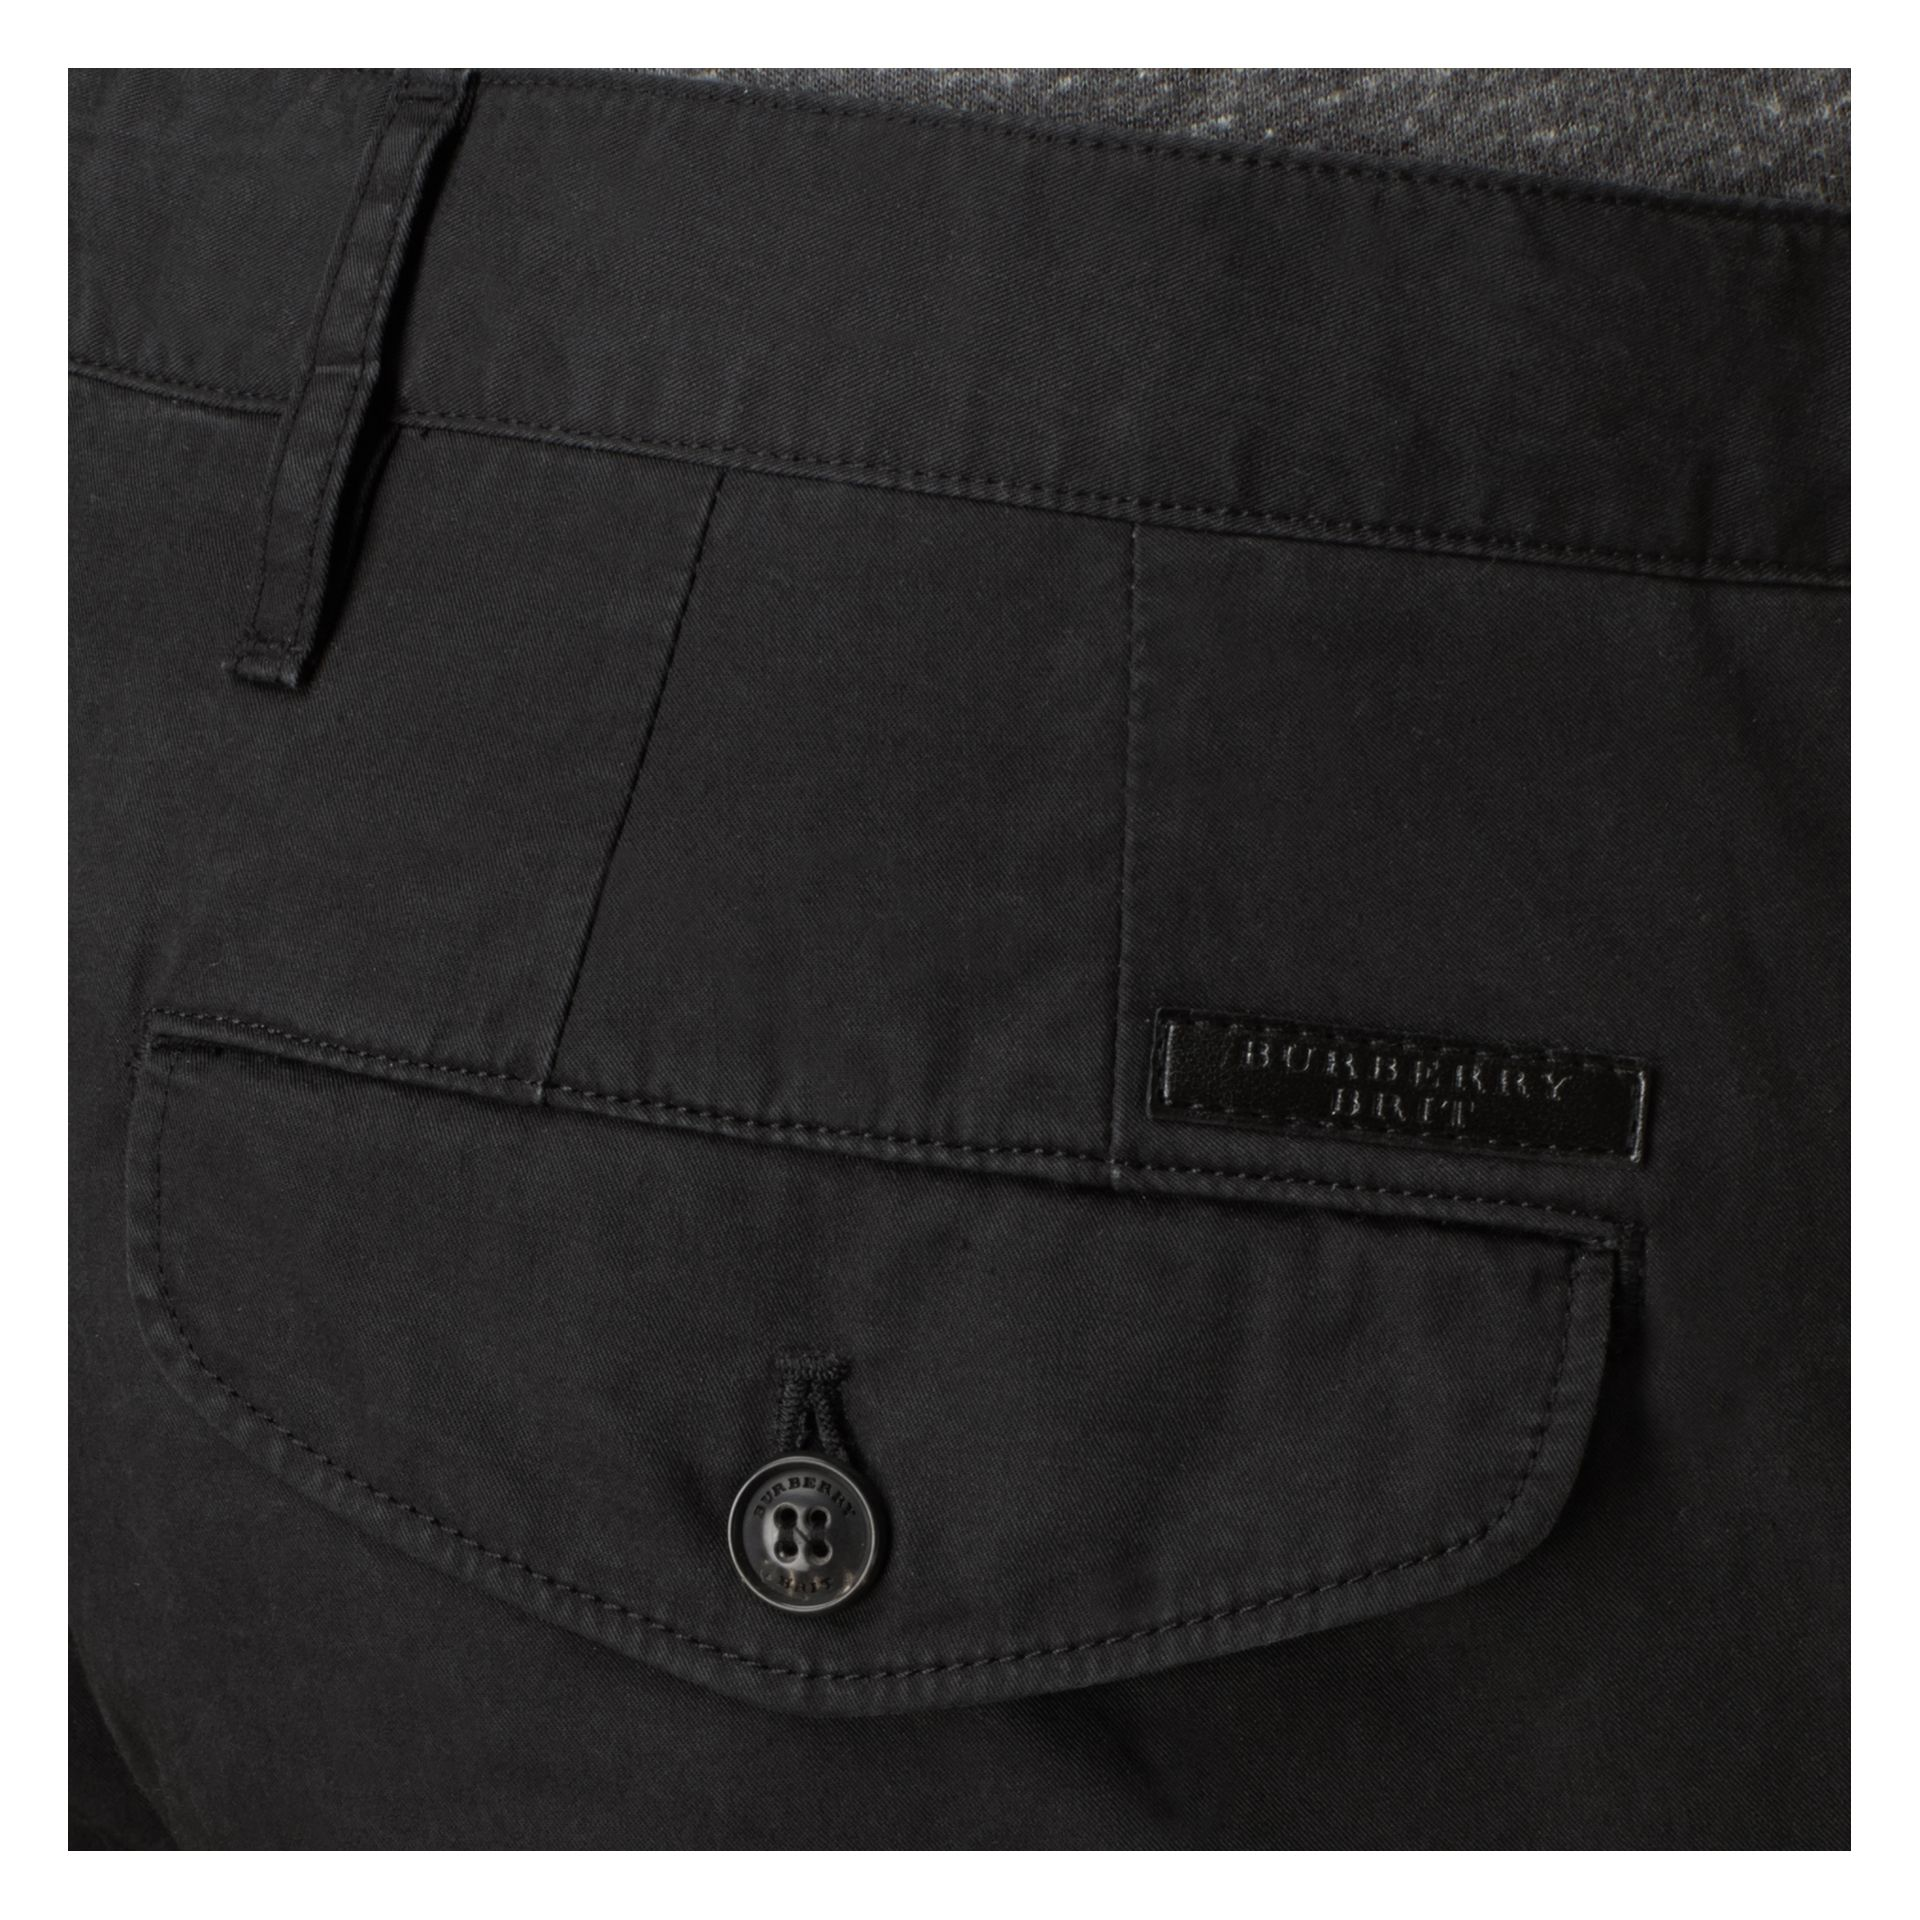 Black Slim Fit Cotton Chinos Black - gallery image 2